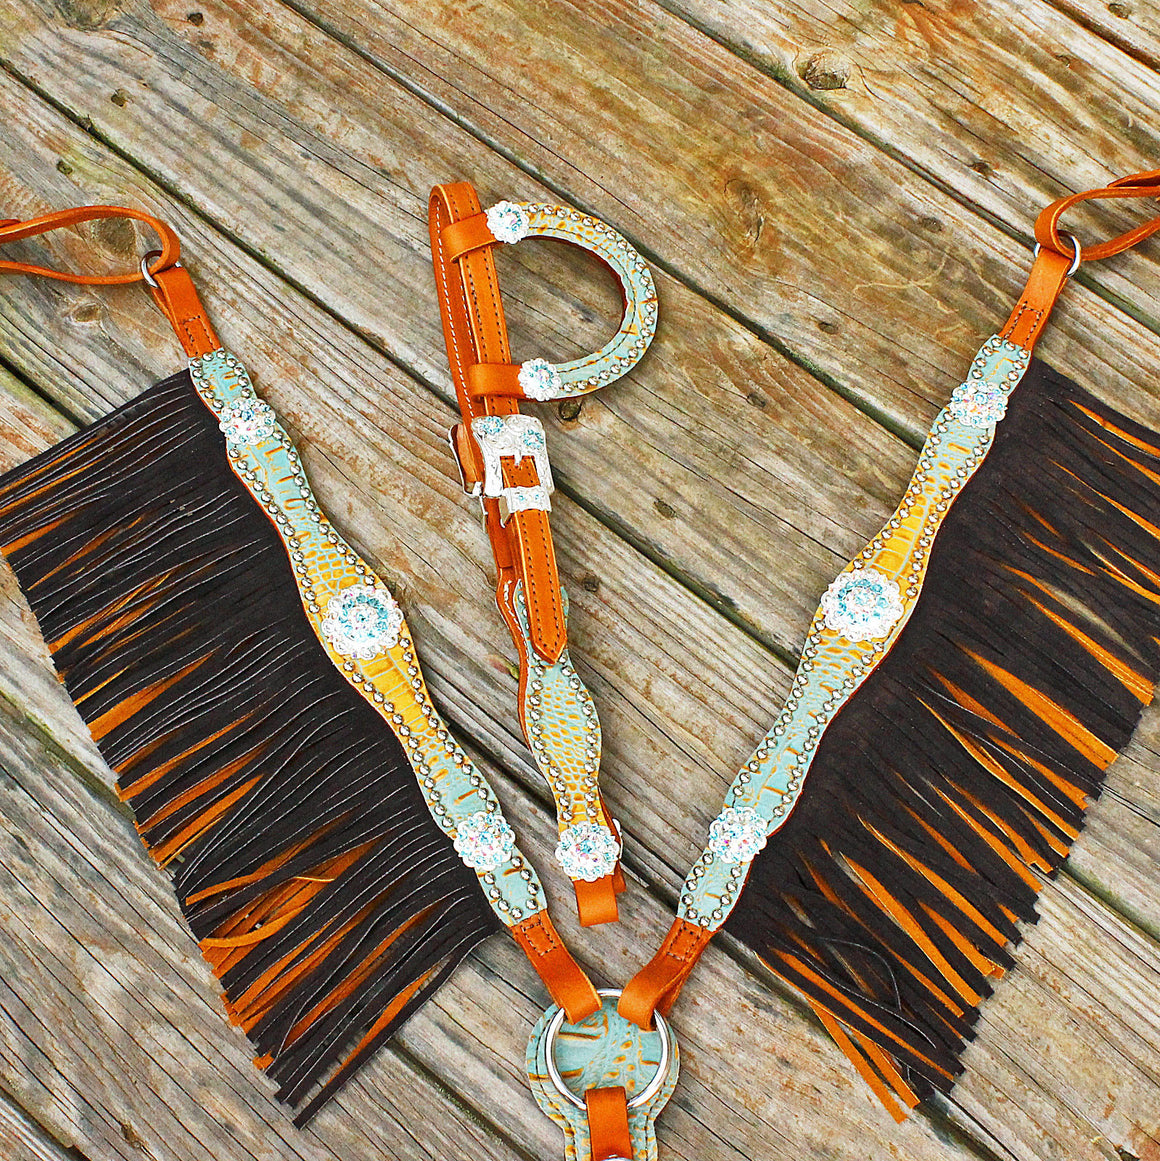 Tan & Brown/Tan Leather DBL Fringe One EarTack Set w/AB & Turquoise Crystal Rhinestone Conchos